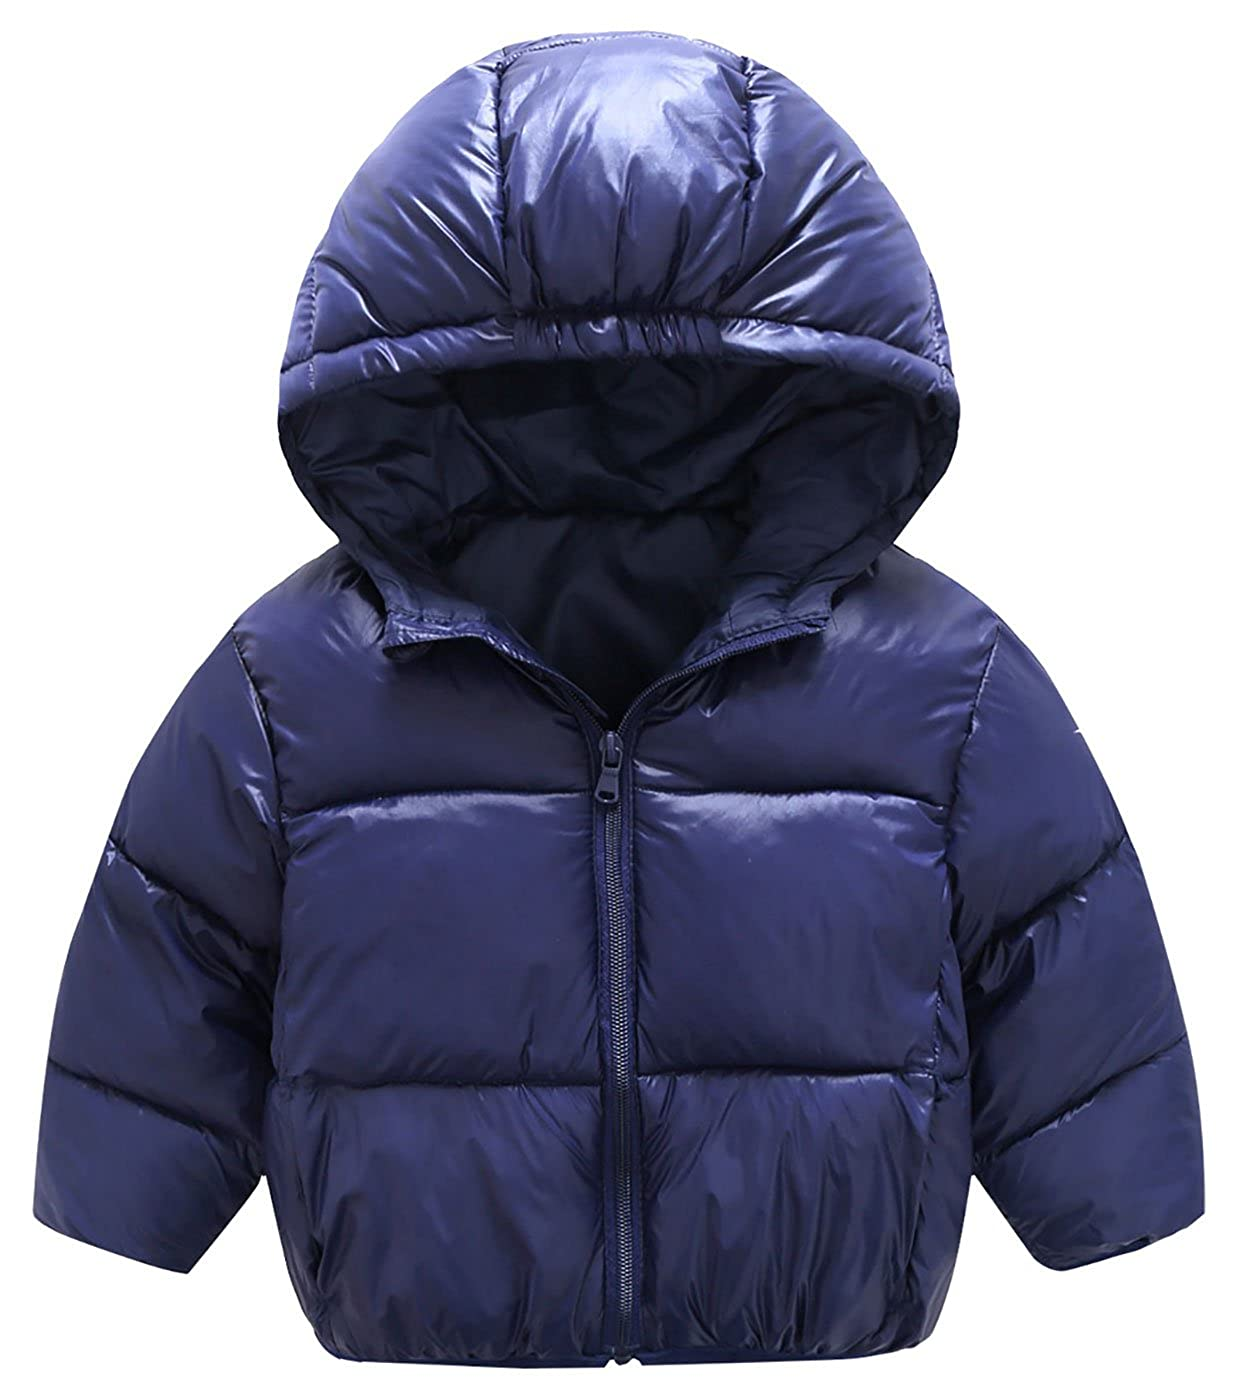 Mengxiaoya Toddler Hooded Coat Winter Lightweight Down Jacket Packable Cotton Coat Navy Blue 2T-3T